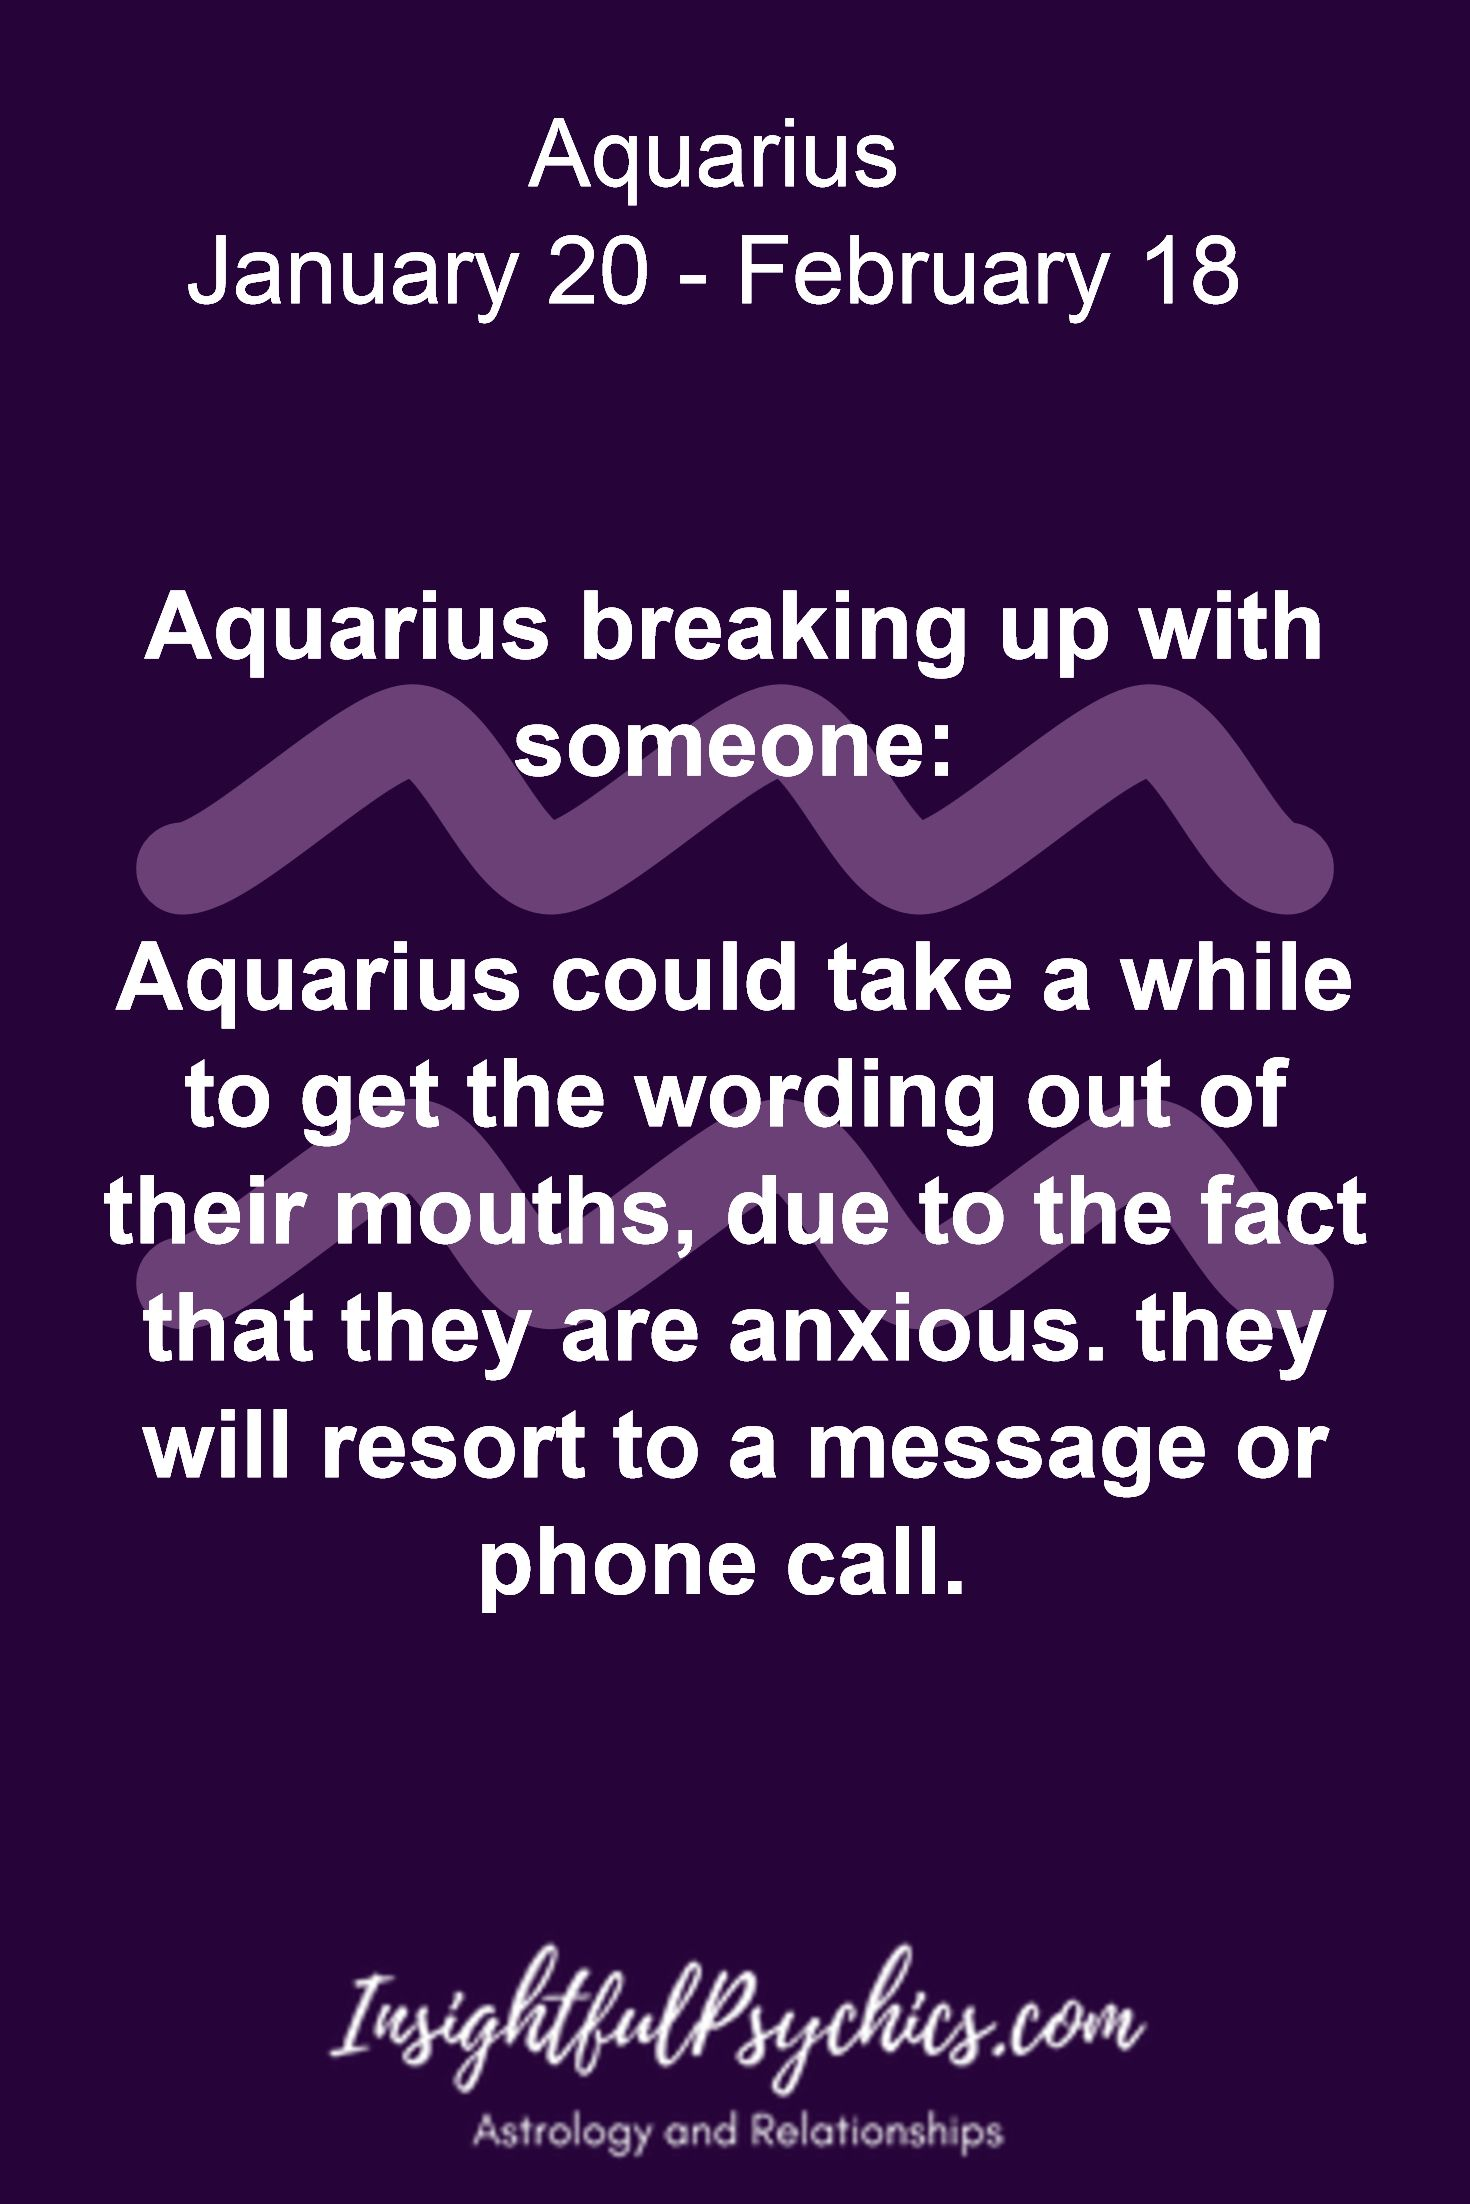 Aquarius In Love And Relationships In 2020 Aquarius Relationship Aquarius Aquarius Quotes